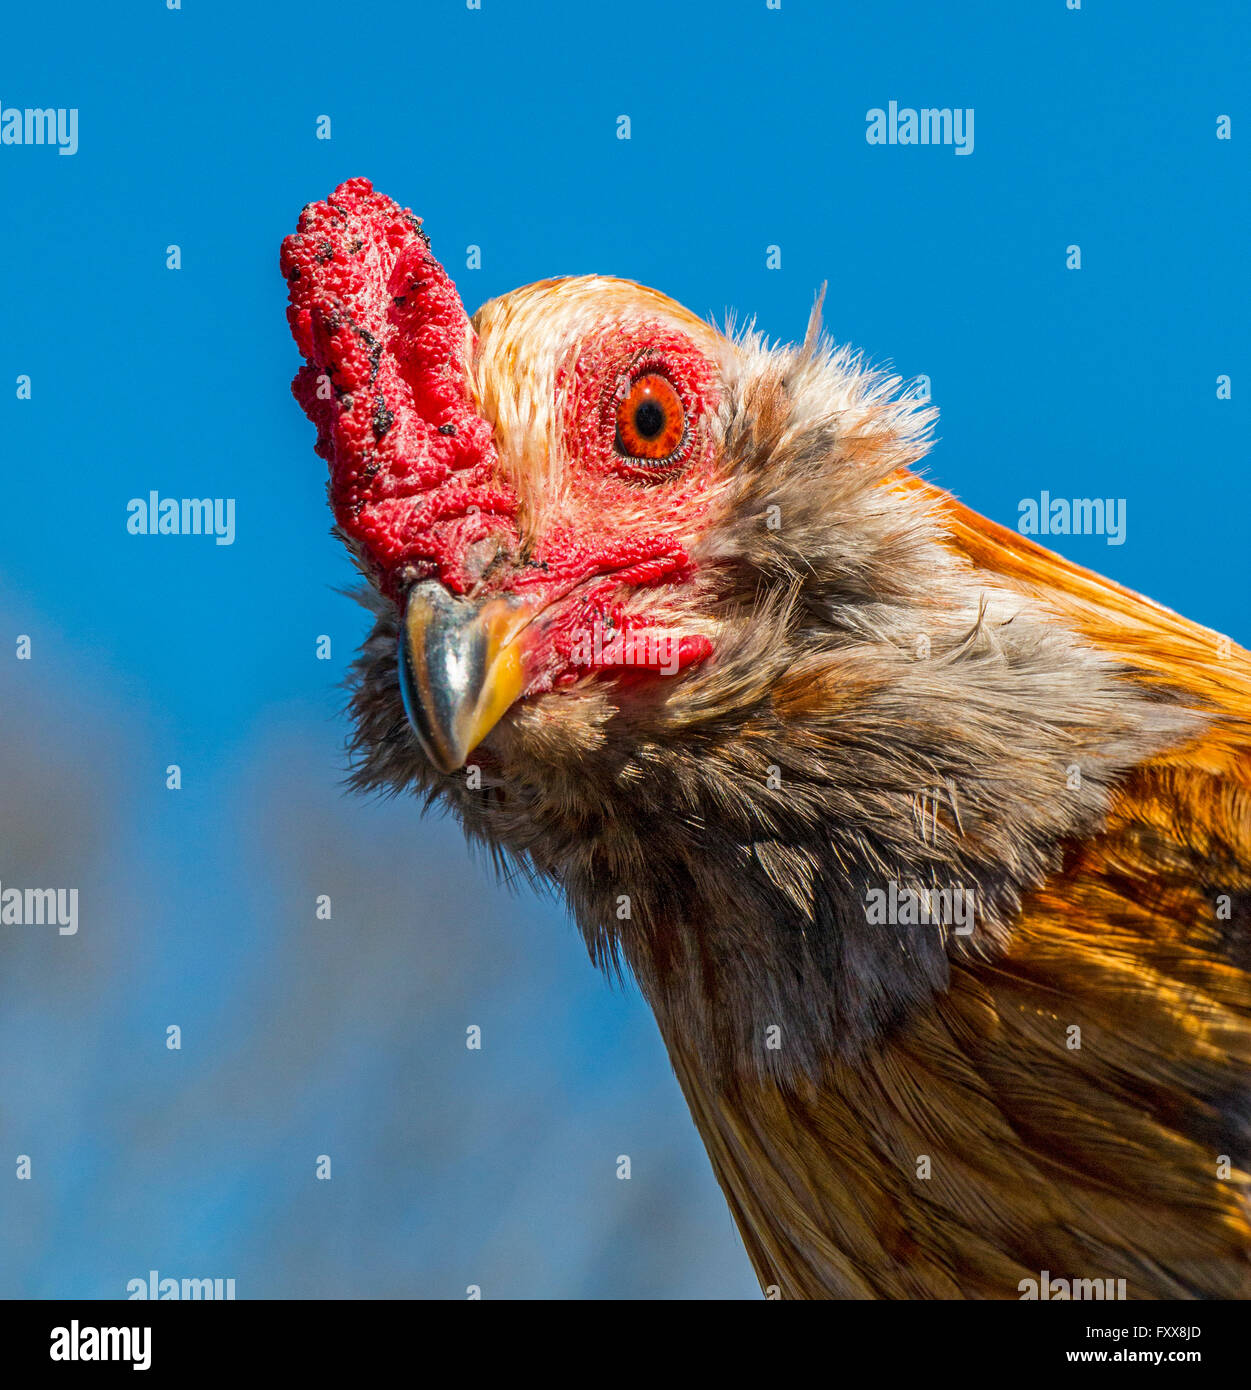 One of roosters chased during Mardi Gras Chicken Run during Lake Charles family friendly Mardi Gras. - Stock Image